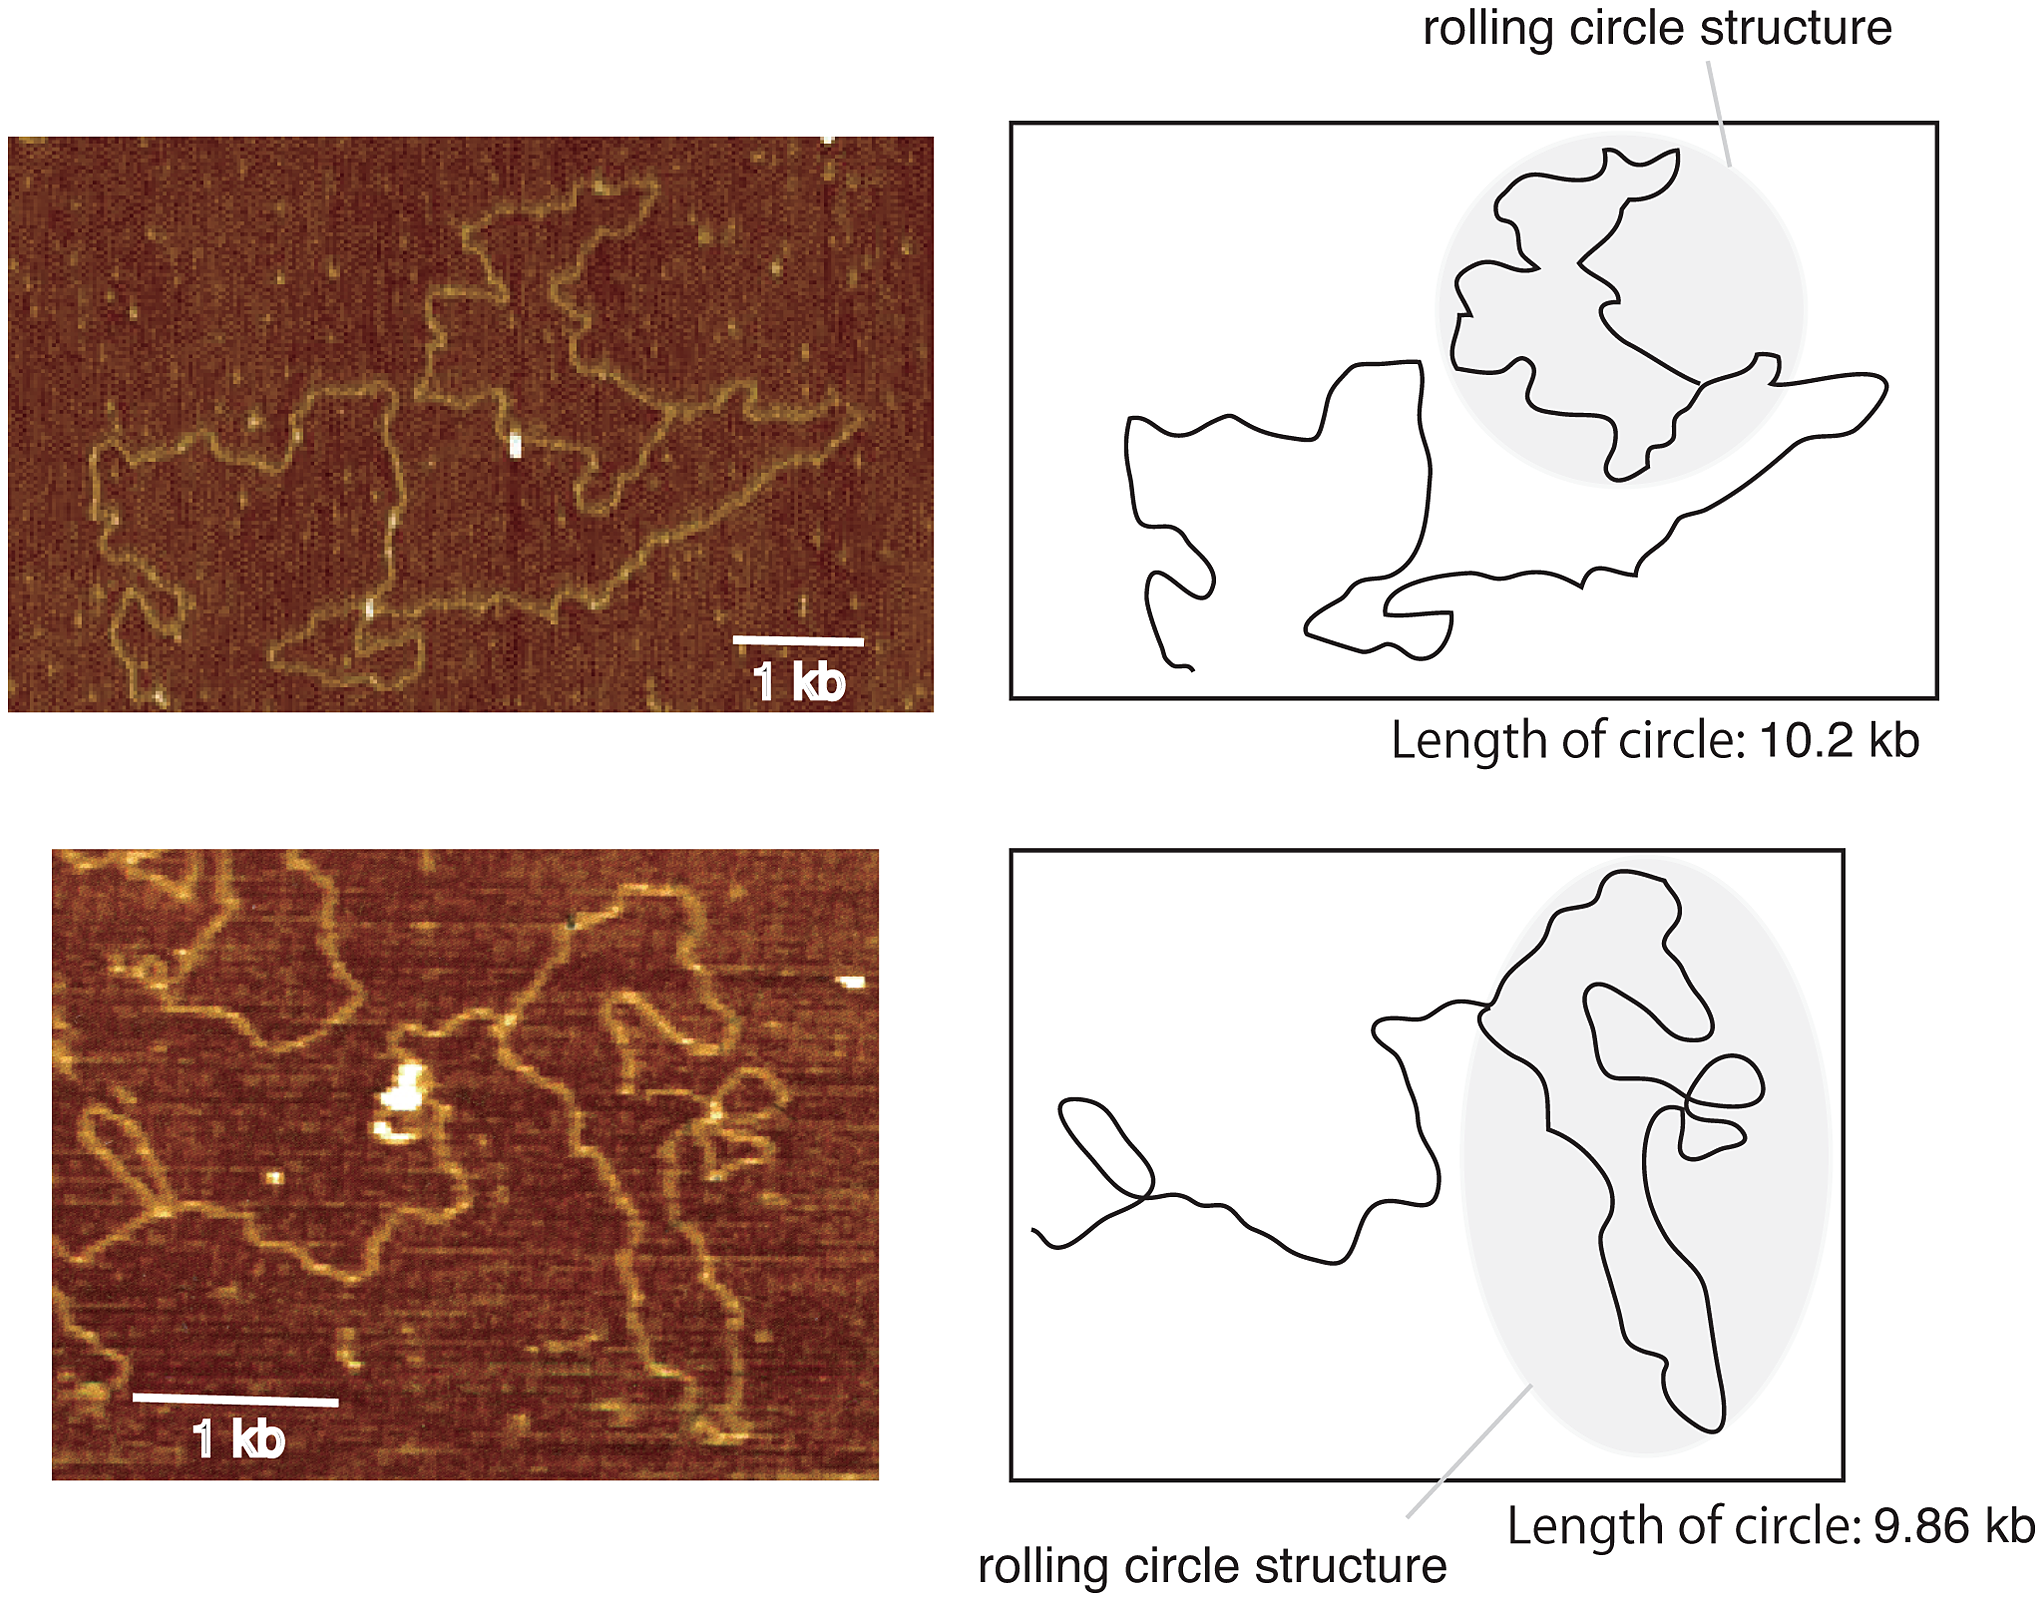 Images of rolling circle structure by atomic force microscopy.